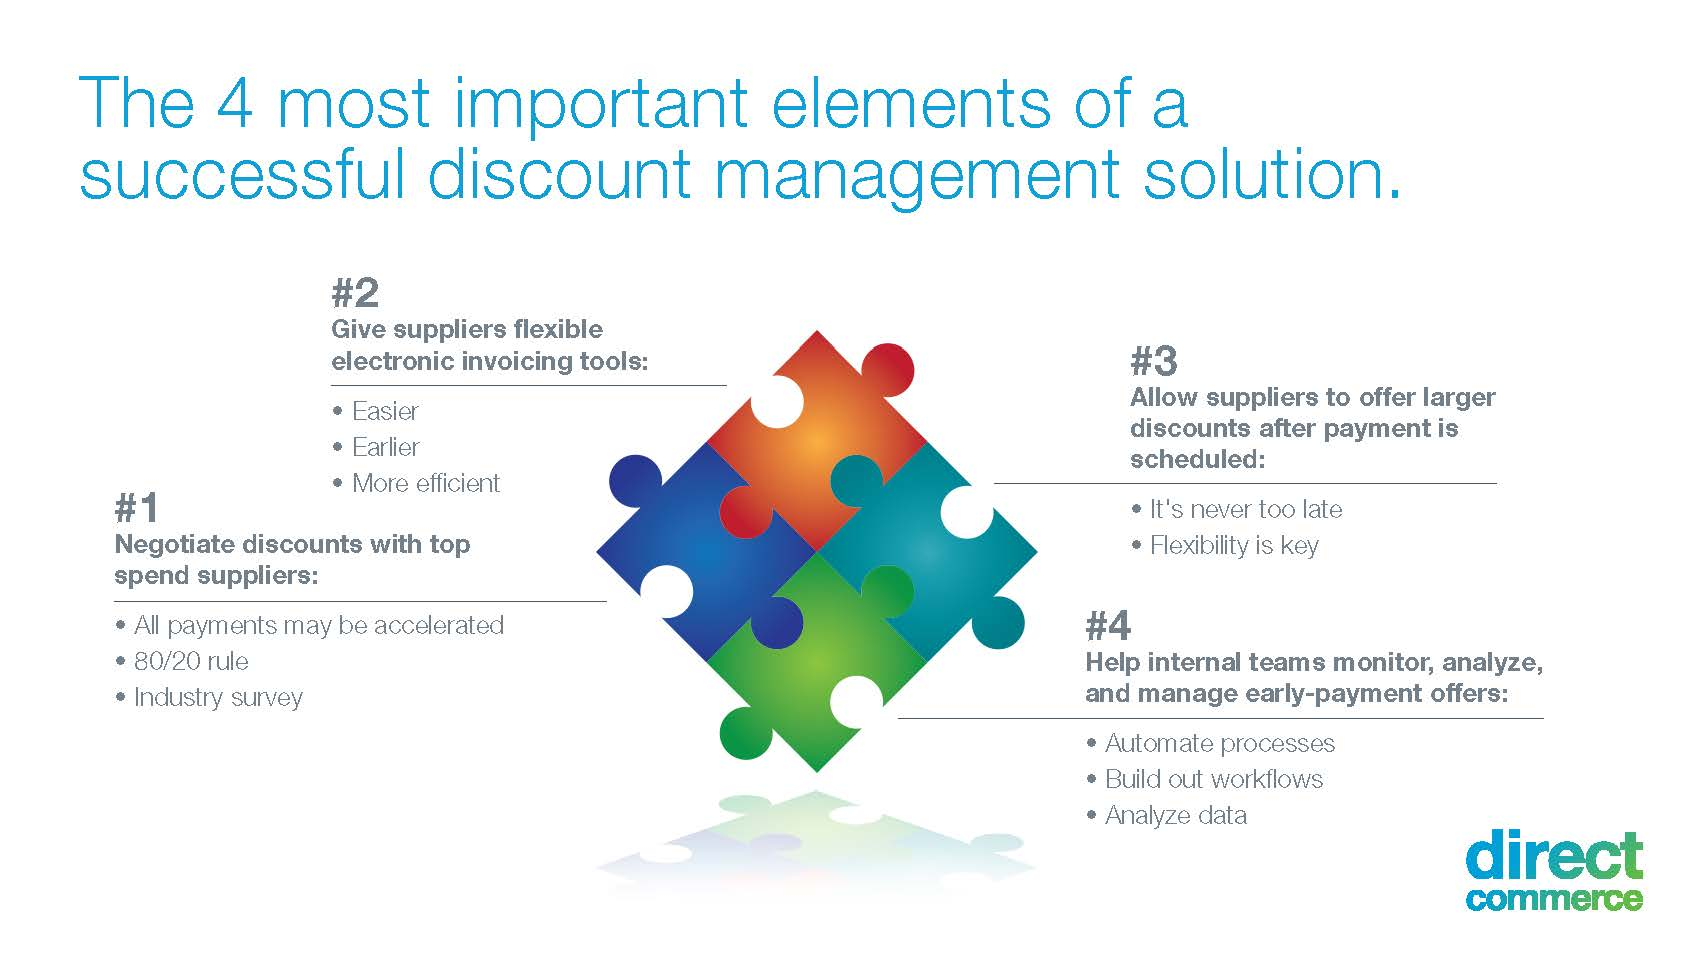 Direct Commerce slide showing the 4 most important elements of a successful discount management solution